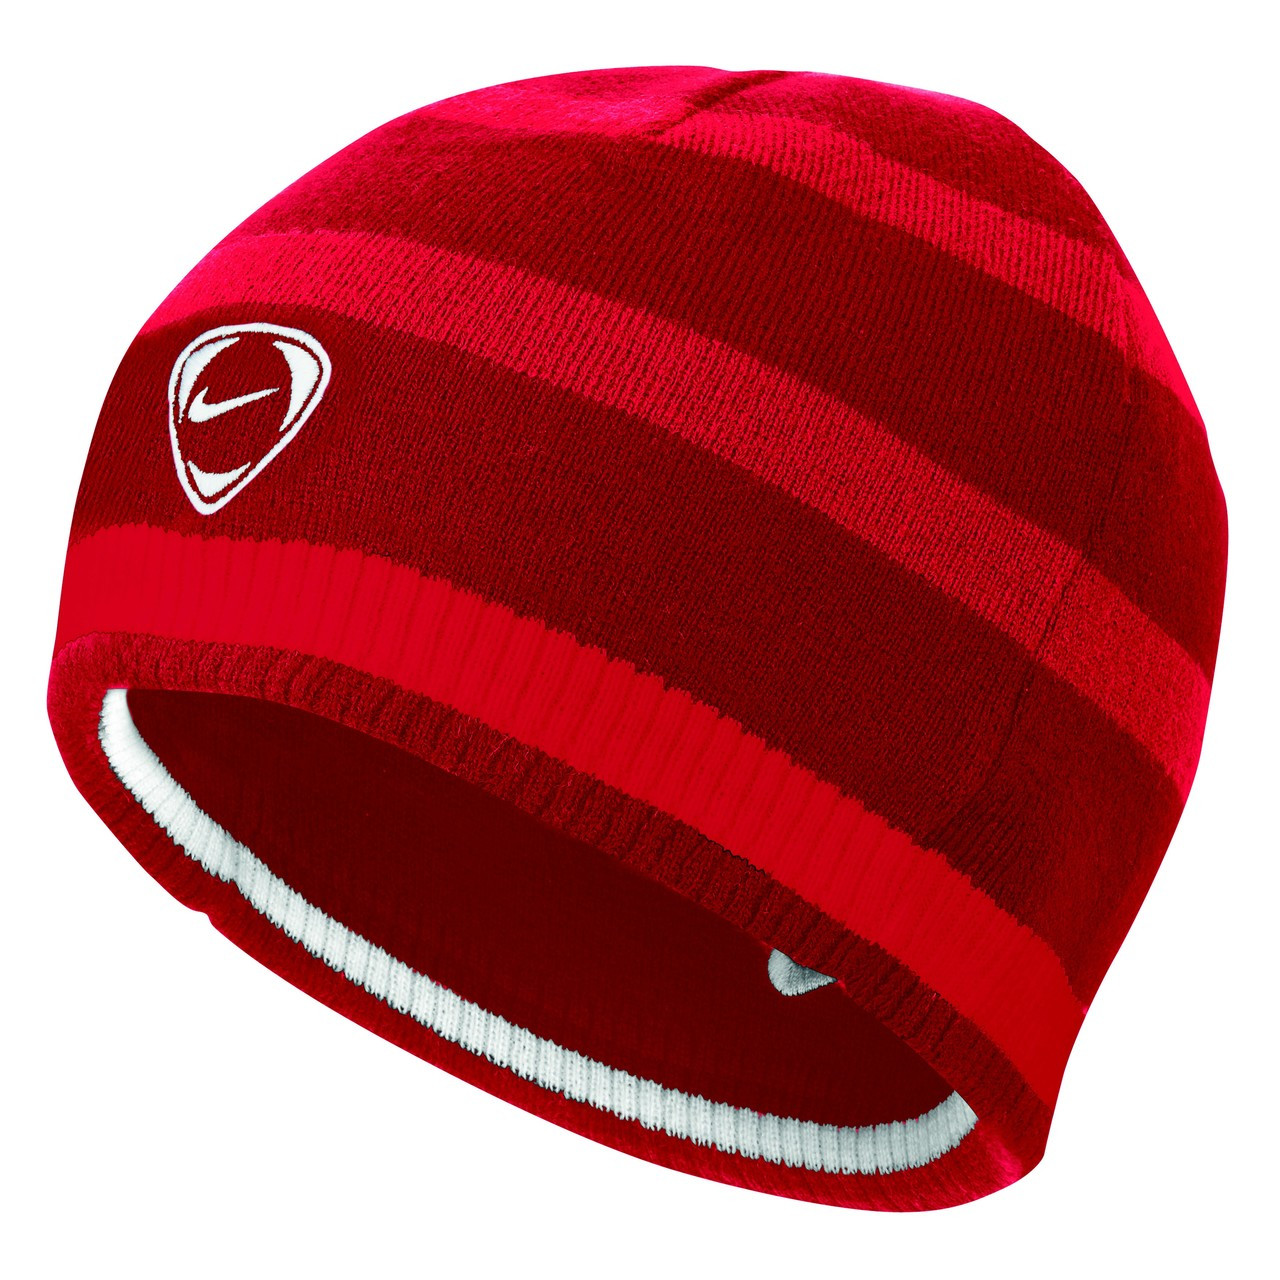 ... CLEARANCE - Nike Cat ID Reversible Beanie - Varsity Red Sport Red White  ... 950f2cc76f9